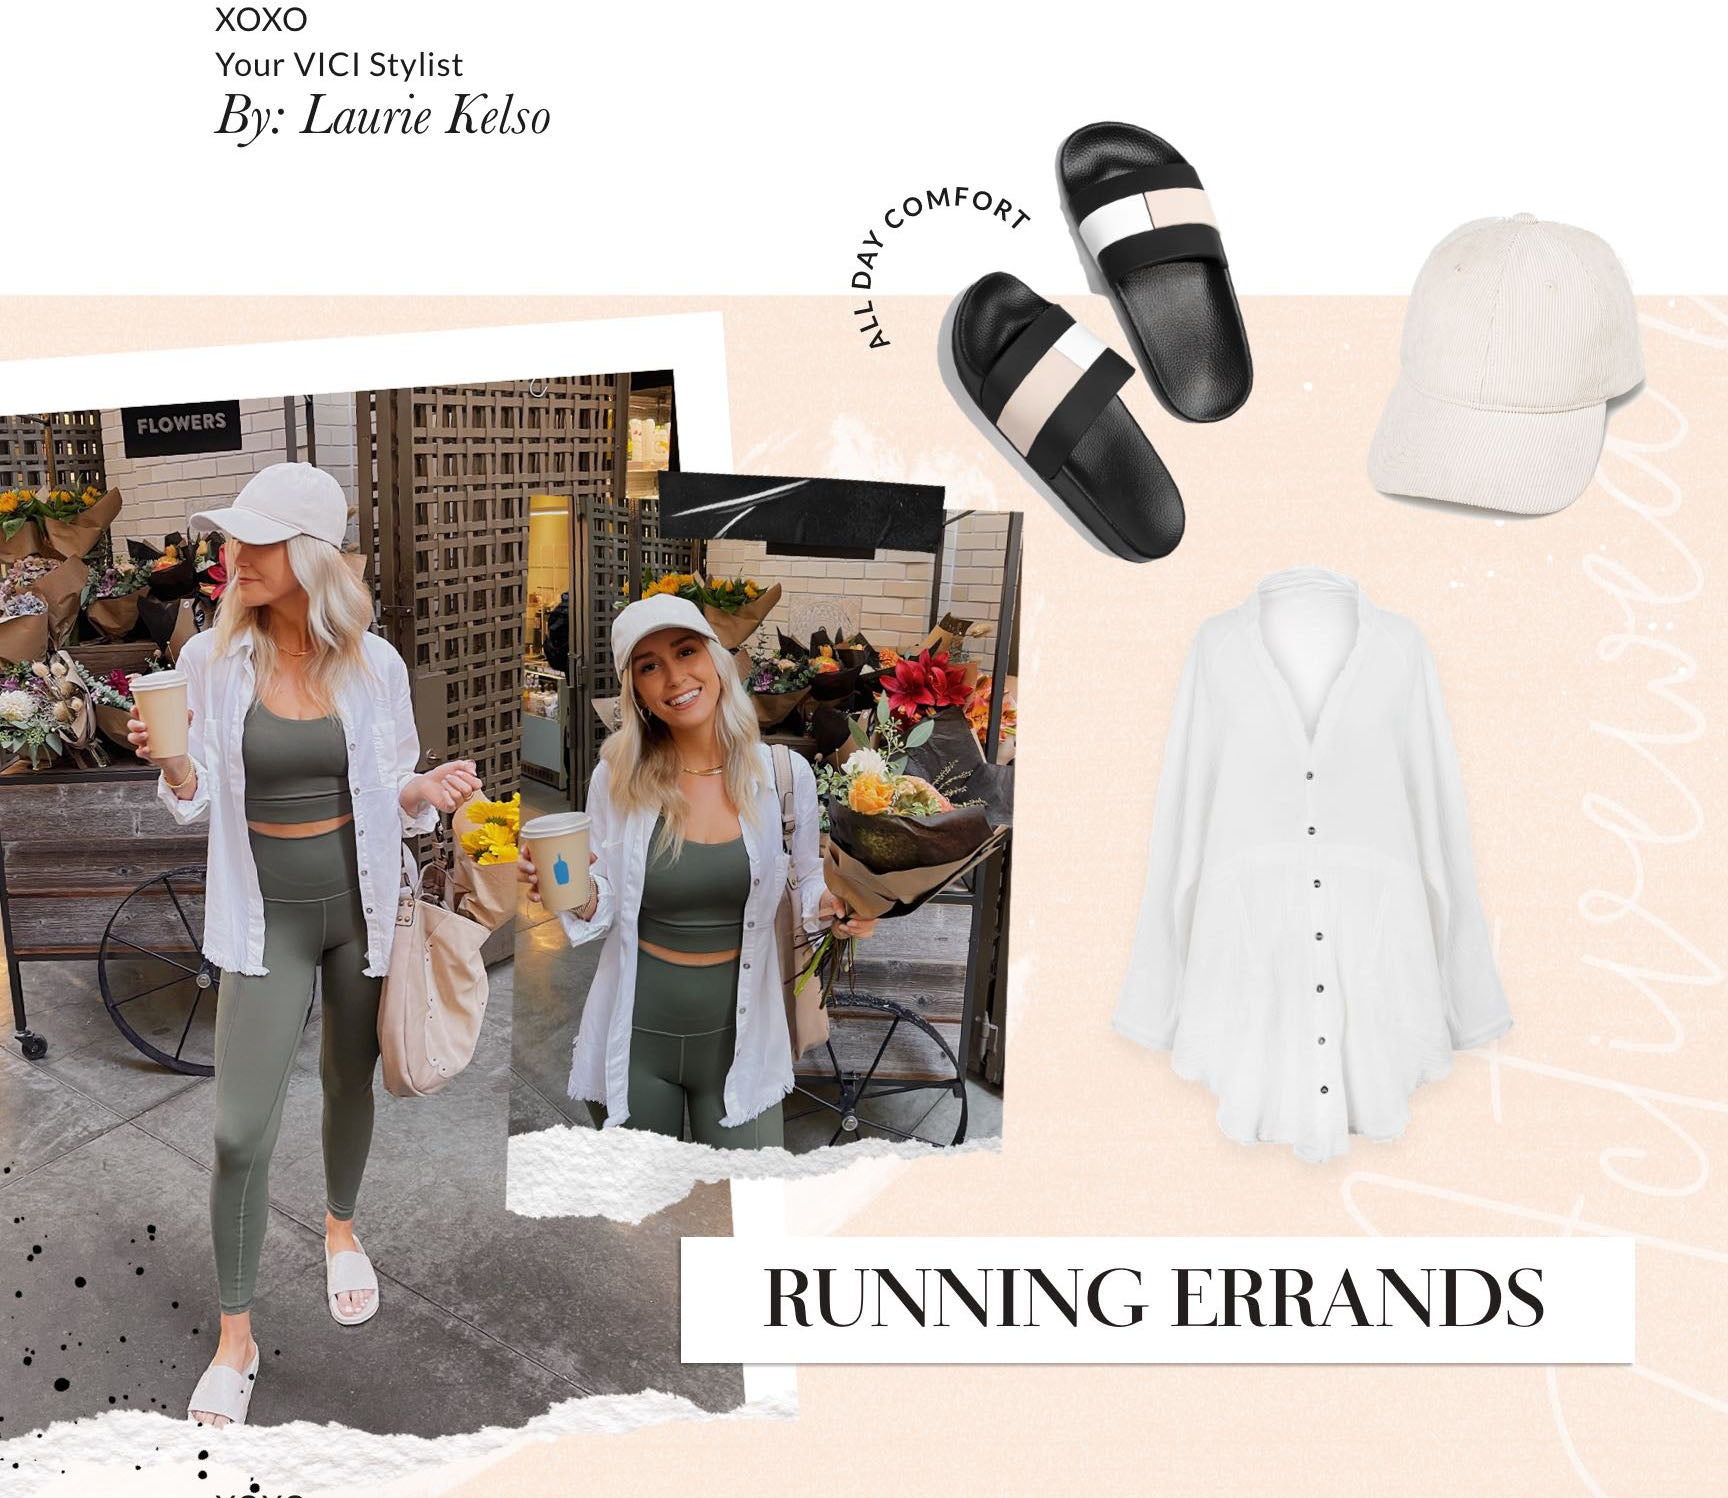 This casual weekend look is all about doing the least while still looking put together.  Easily achieve this effortless vibe by grabbing your favorite, neutral toned leggings and sports bra set. Next, cover up your messy hair with a nude hat. A large slouchy hobo bag will hold those fresh flowers for some much needed cheer in your apartment. Add a boxy, white button up just in case the grocery store produce aisle is a little too chilly. Who knows, maybe just by wearing this set you'll make it to the gym at the end of the day. Or not, we're not judging.